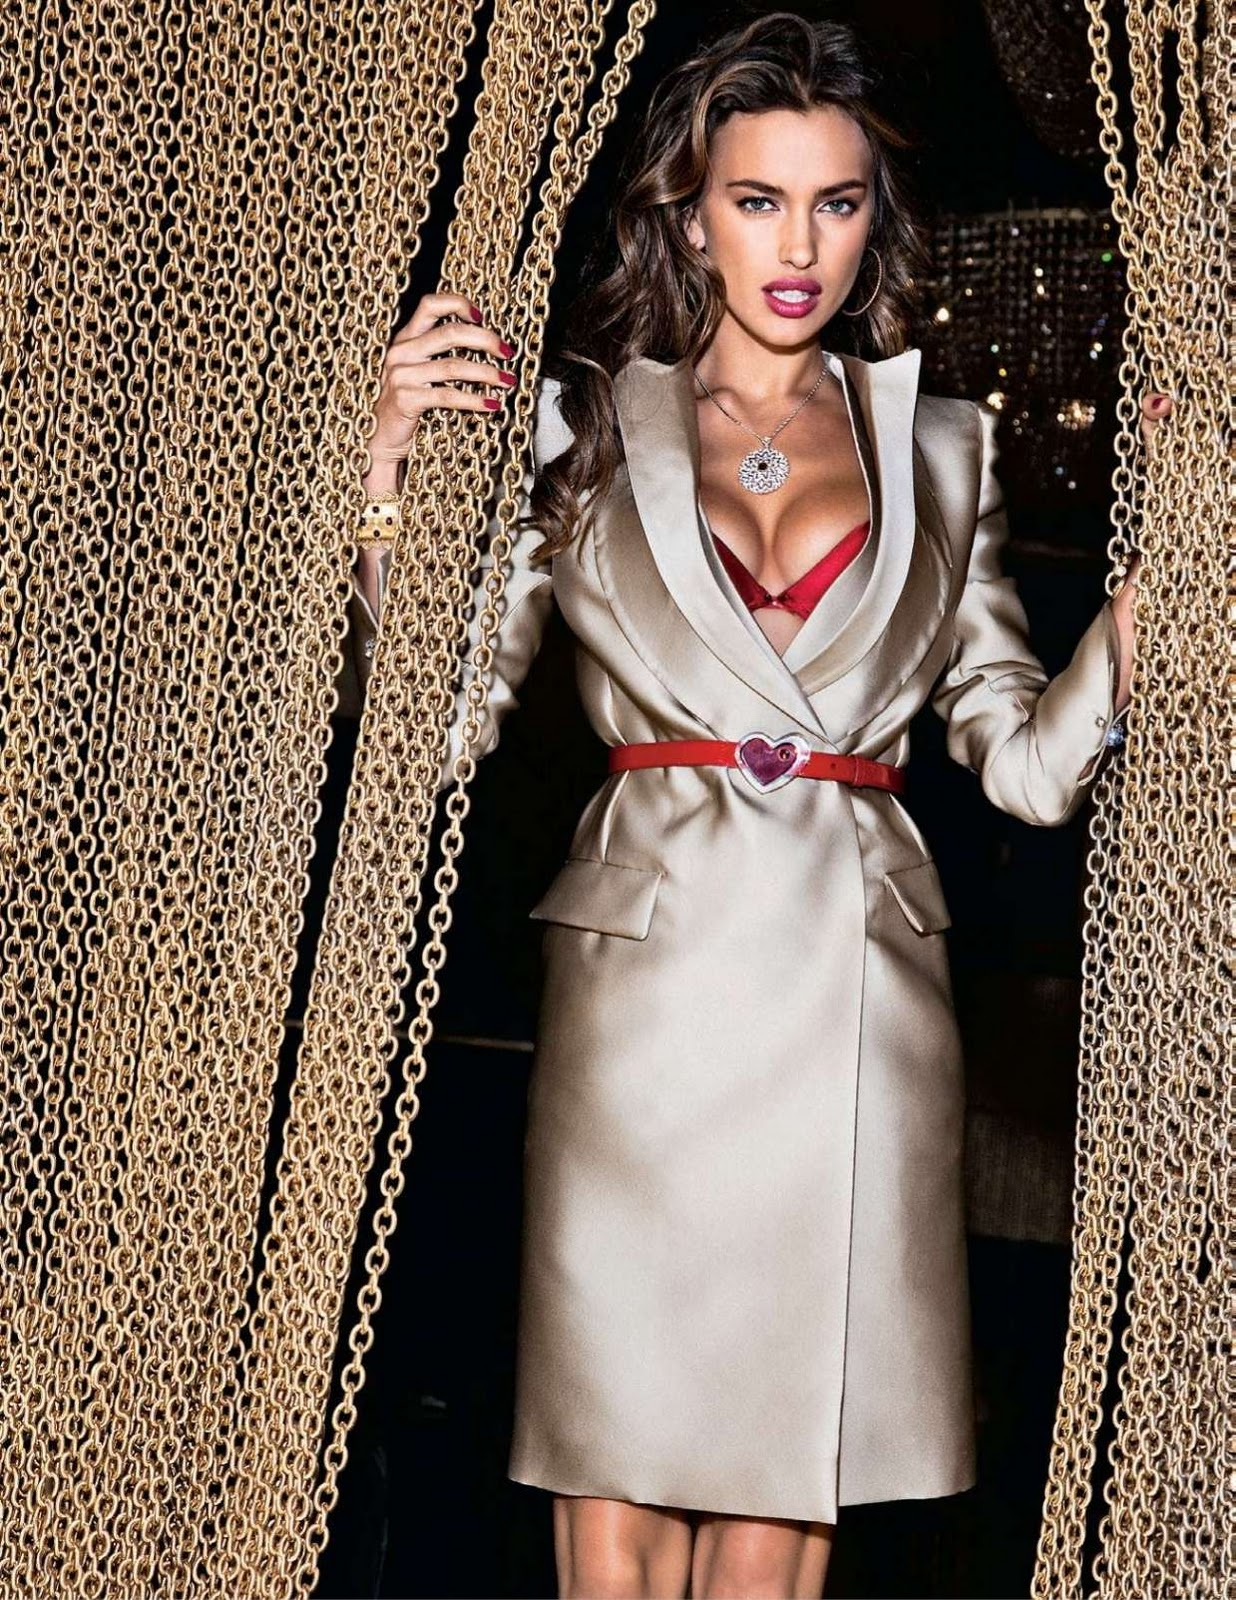 Irina Shayk Photoshoot Gallery